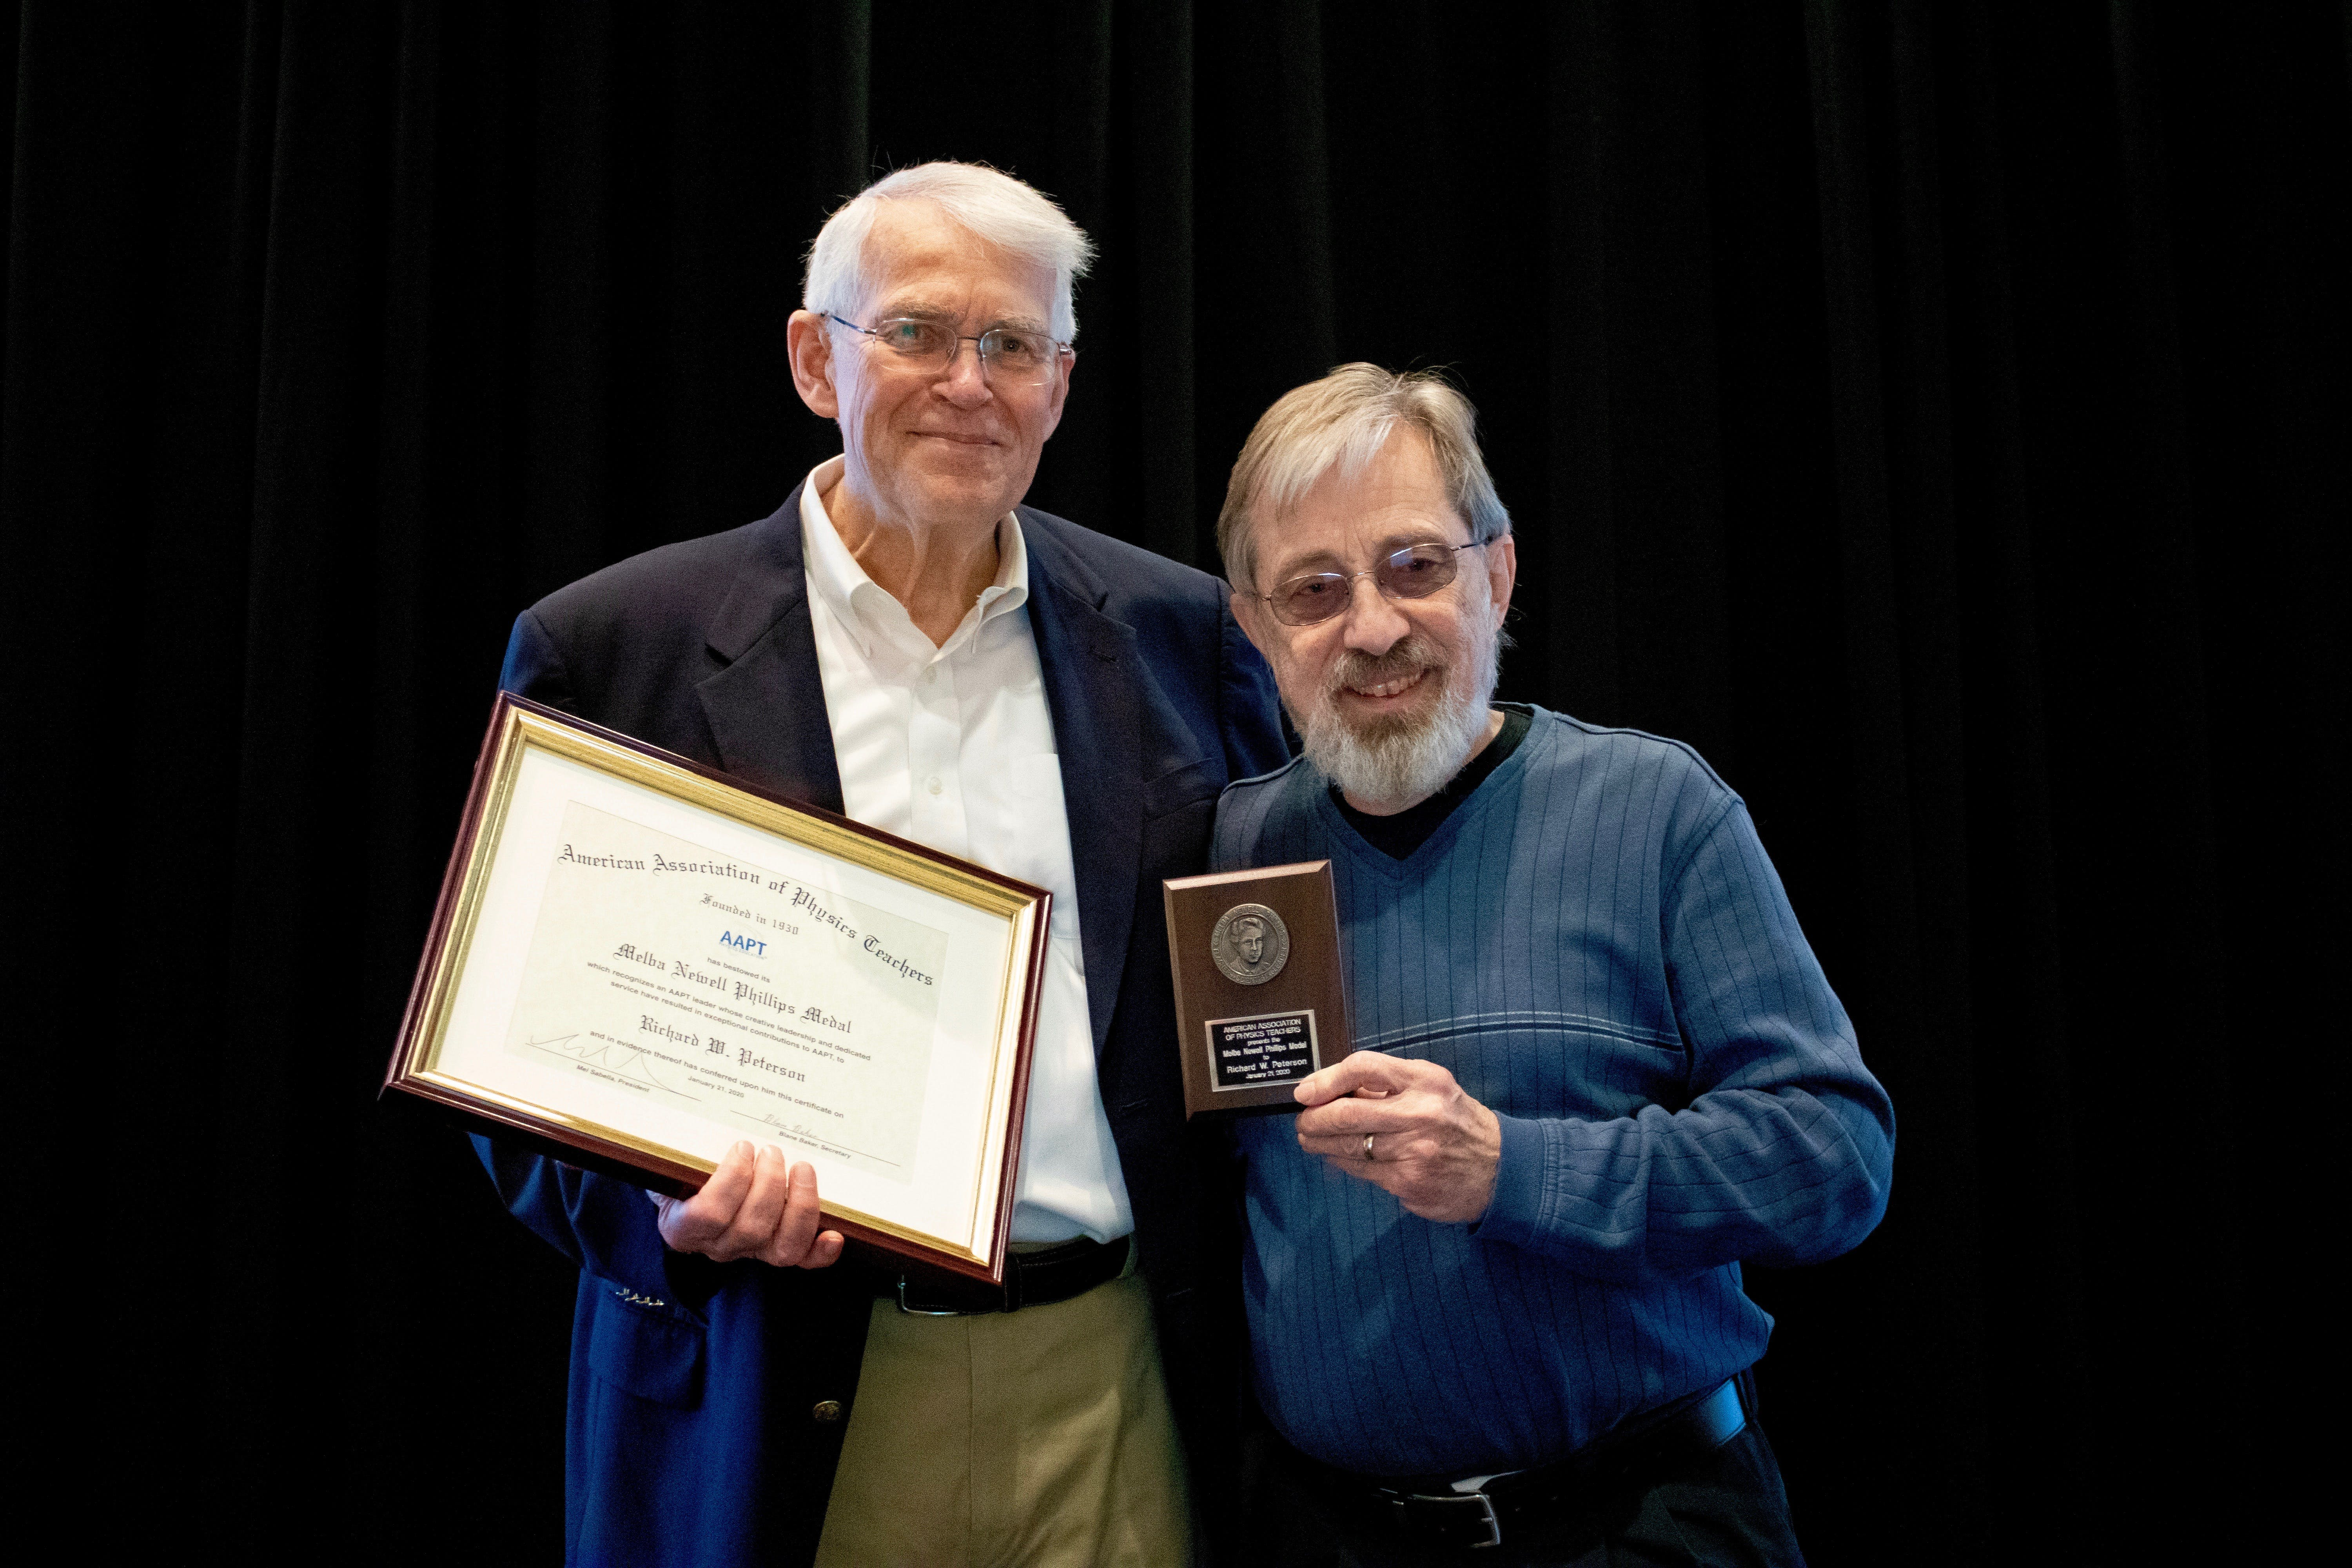 Peterson is presented the Melba Newell Phillips Medal by fellow former AAPT President Gordon Ramsey at the Orlando Winter Meeting.